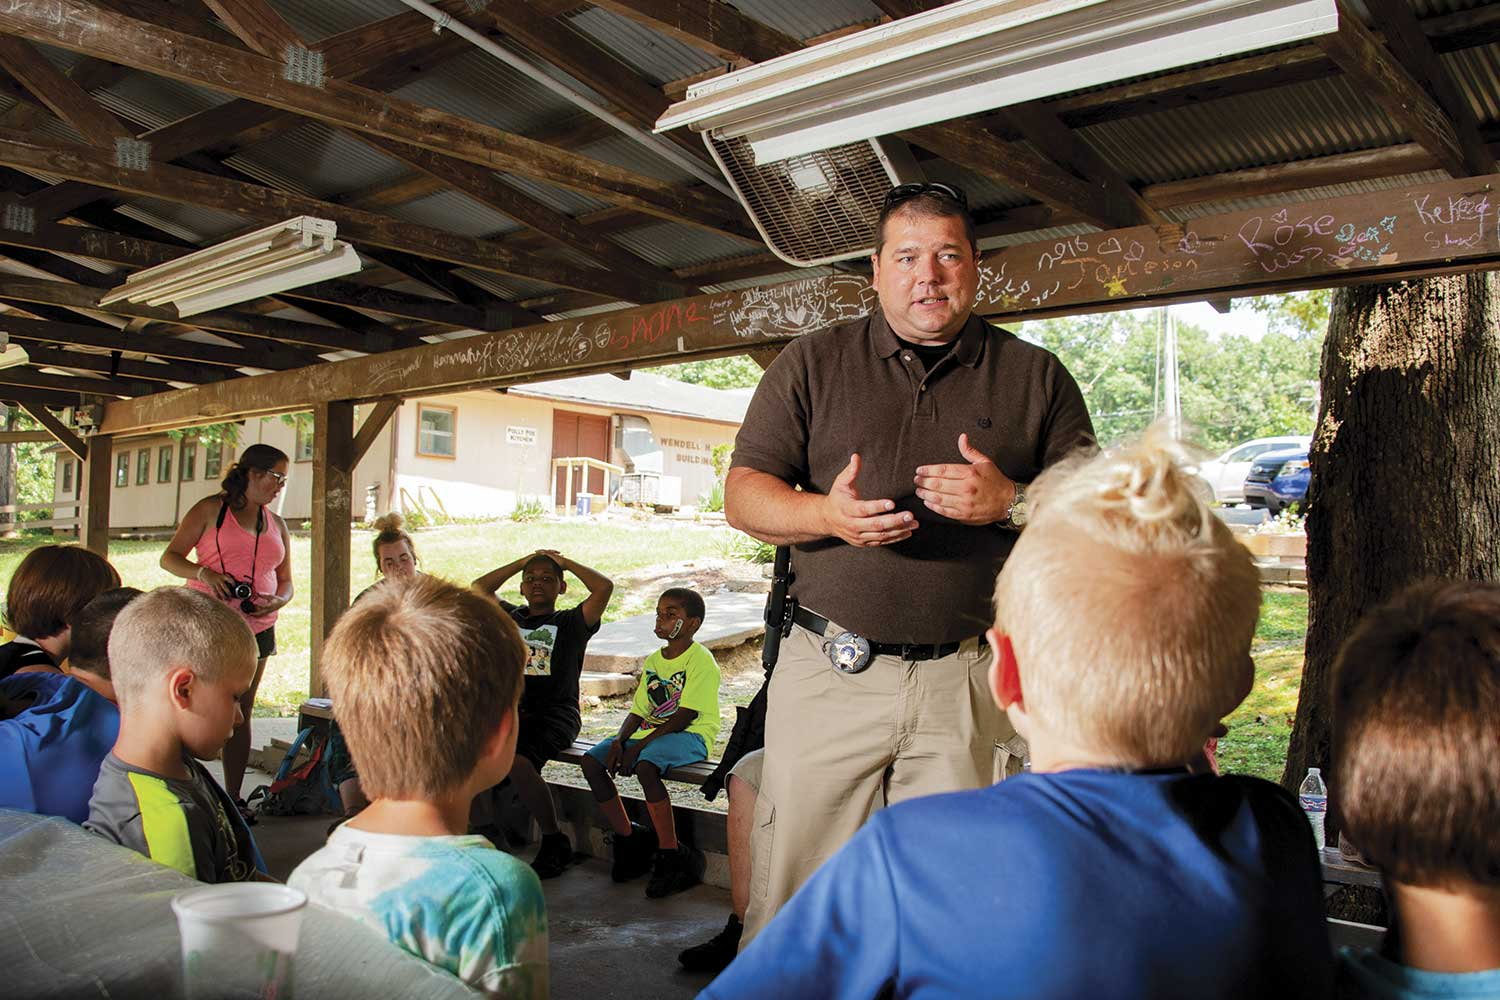 Marshall County Sheriff's Office Detective William Strader speaks to campers about D.A.R.E. in mid-July at the Kentucky Sheriffs' Boys and Girls Ranch. (Photo by Jim Robertson)